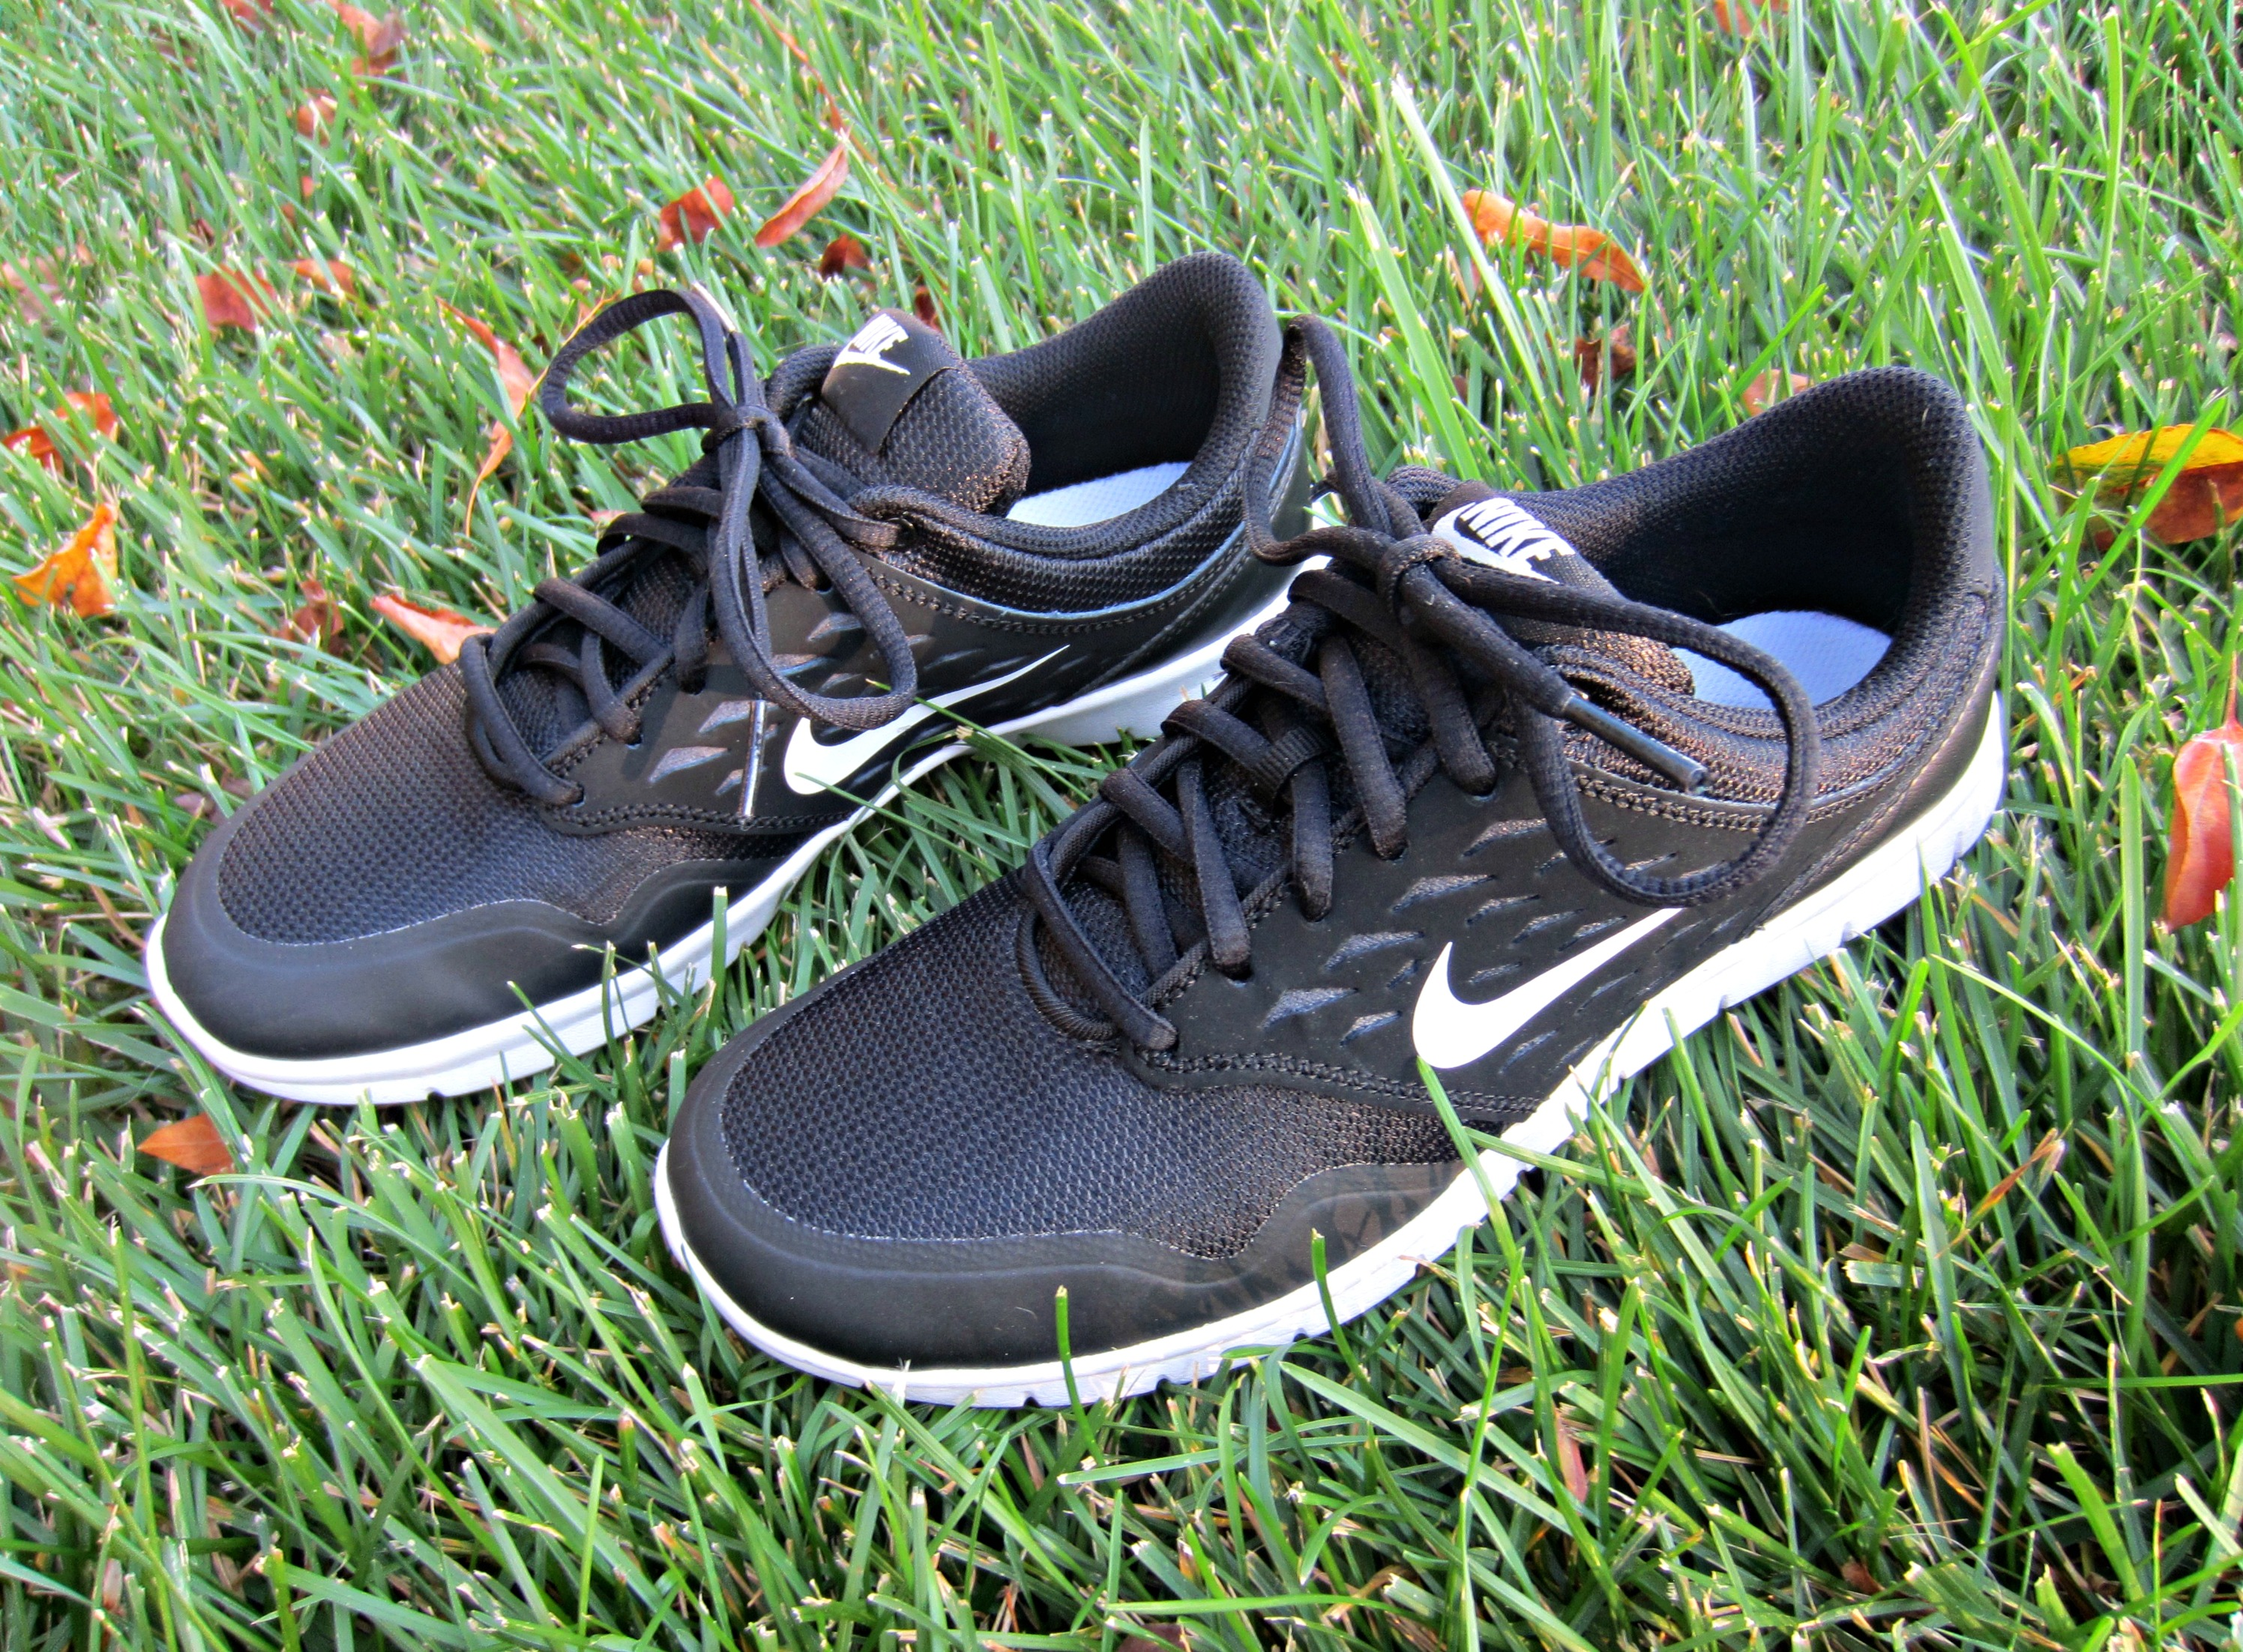 Nike Orive NM athletic shoe